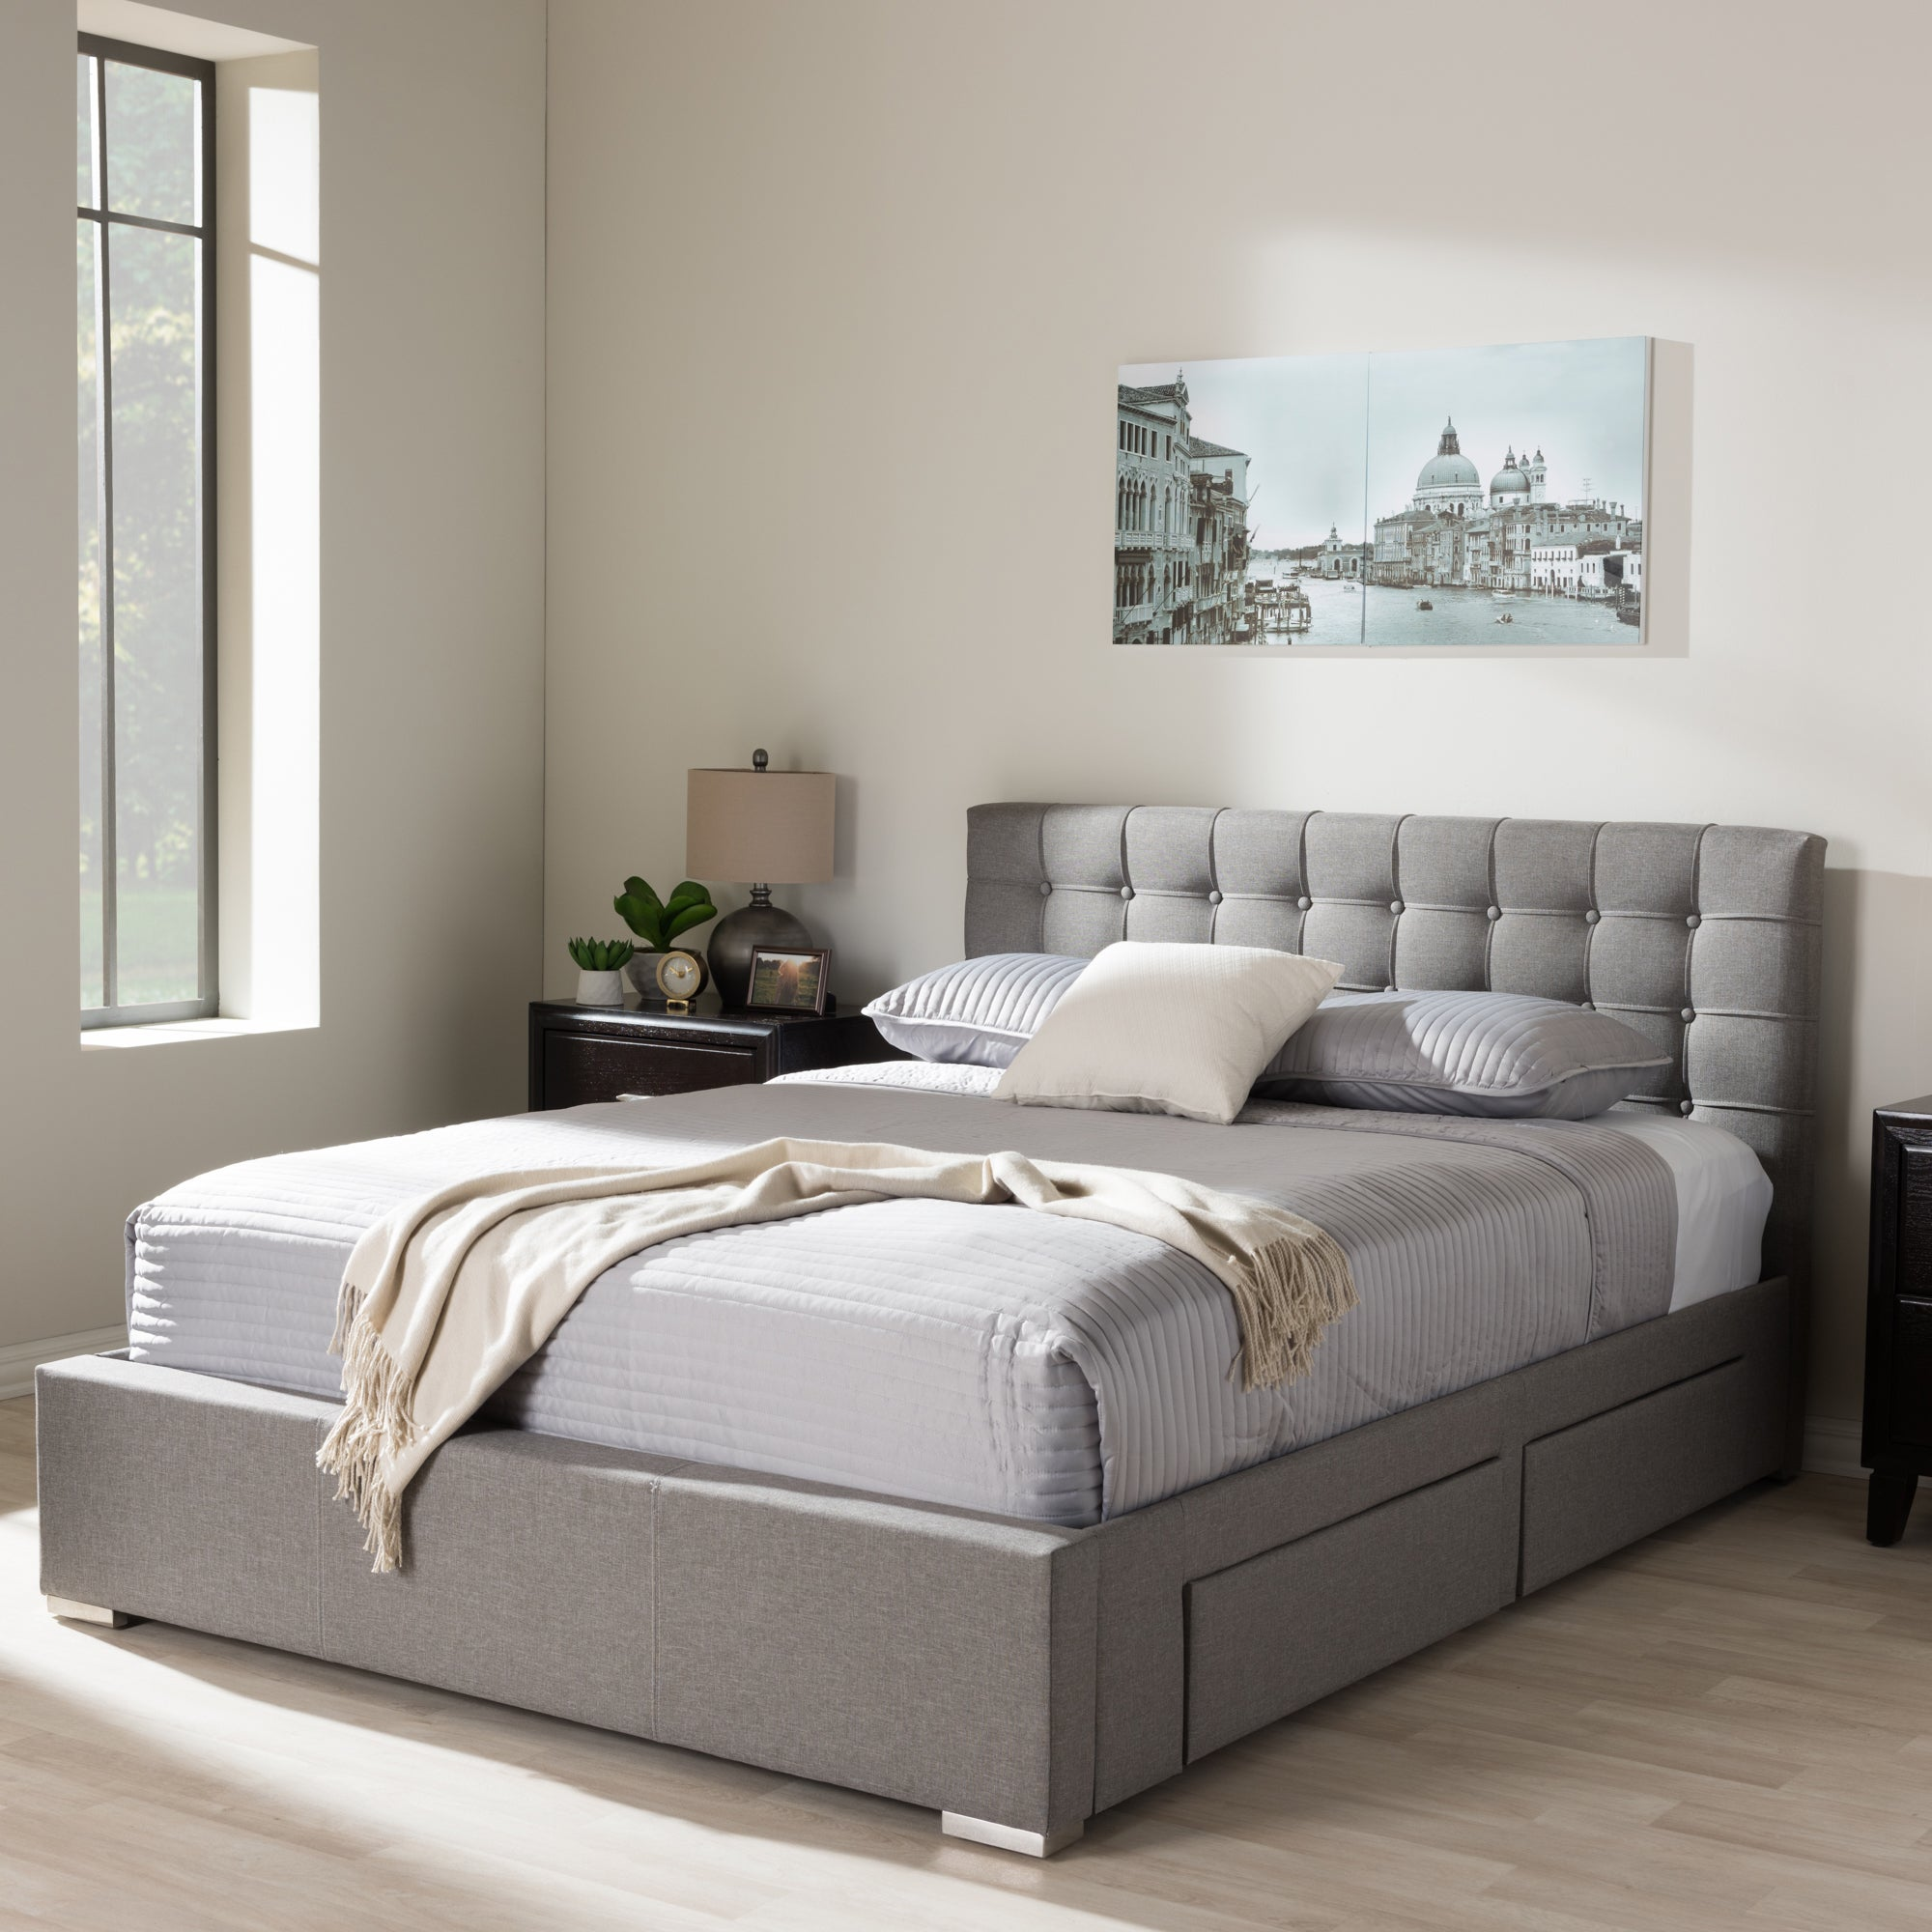 Shop Black Friday Deals On Baxton Studio Adonis Modern And Contemporary Grey Fabric 4 Drawer King Size Storage Platform Bed Overstock 20543701